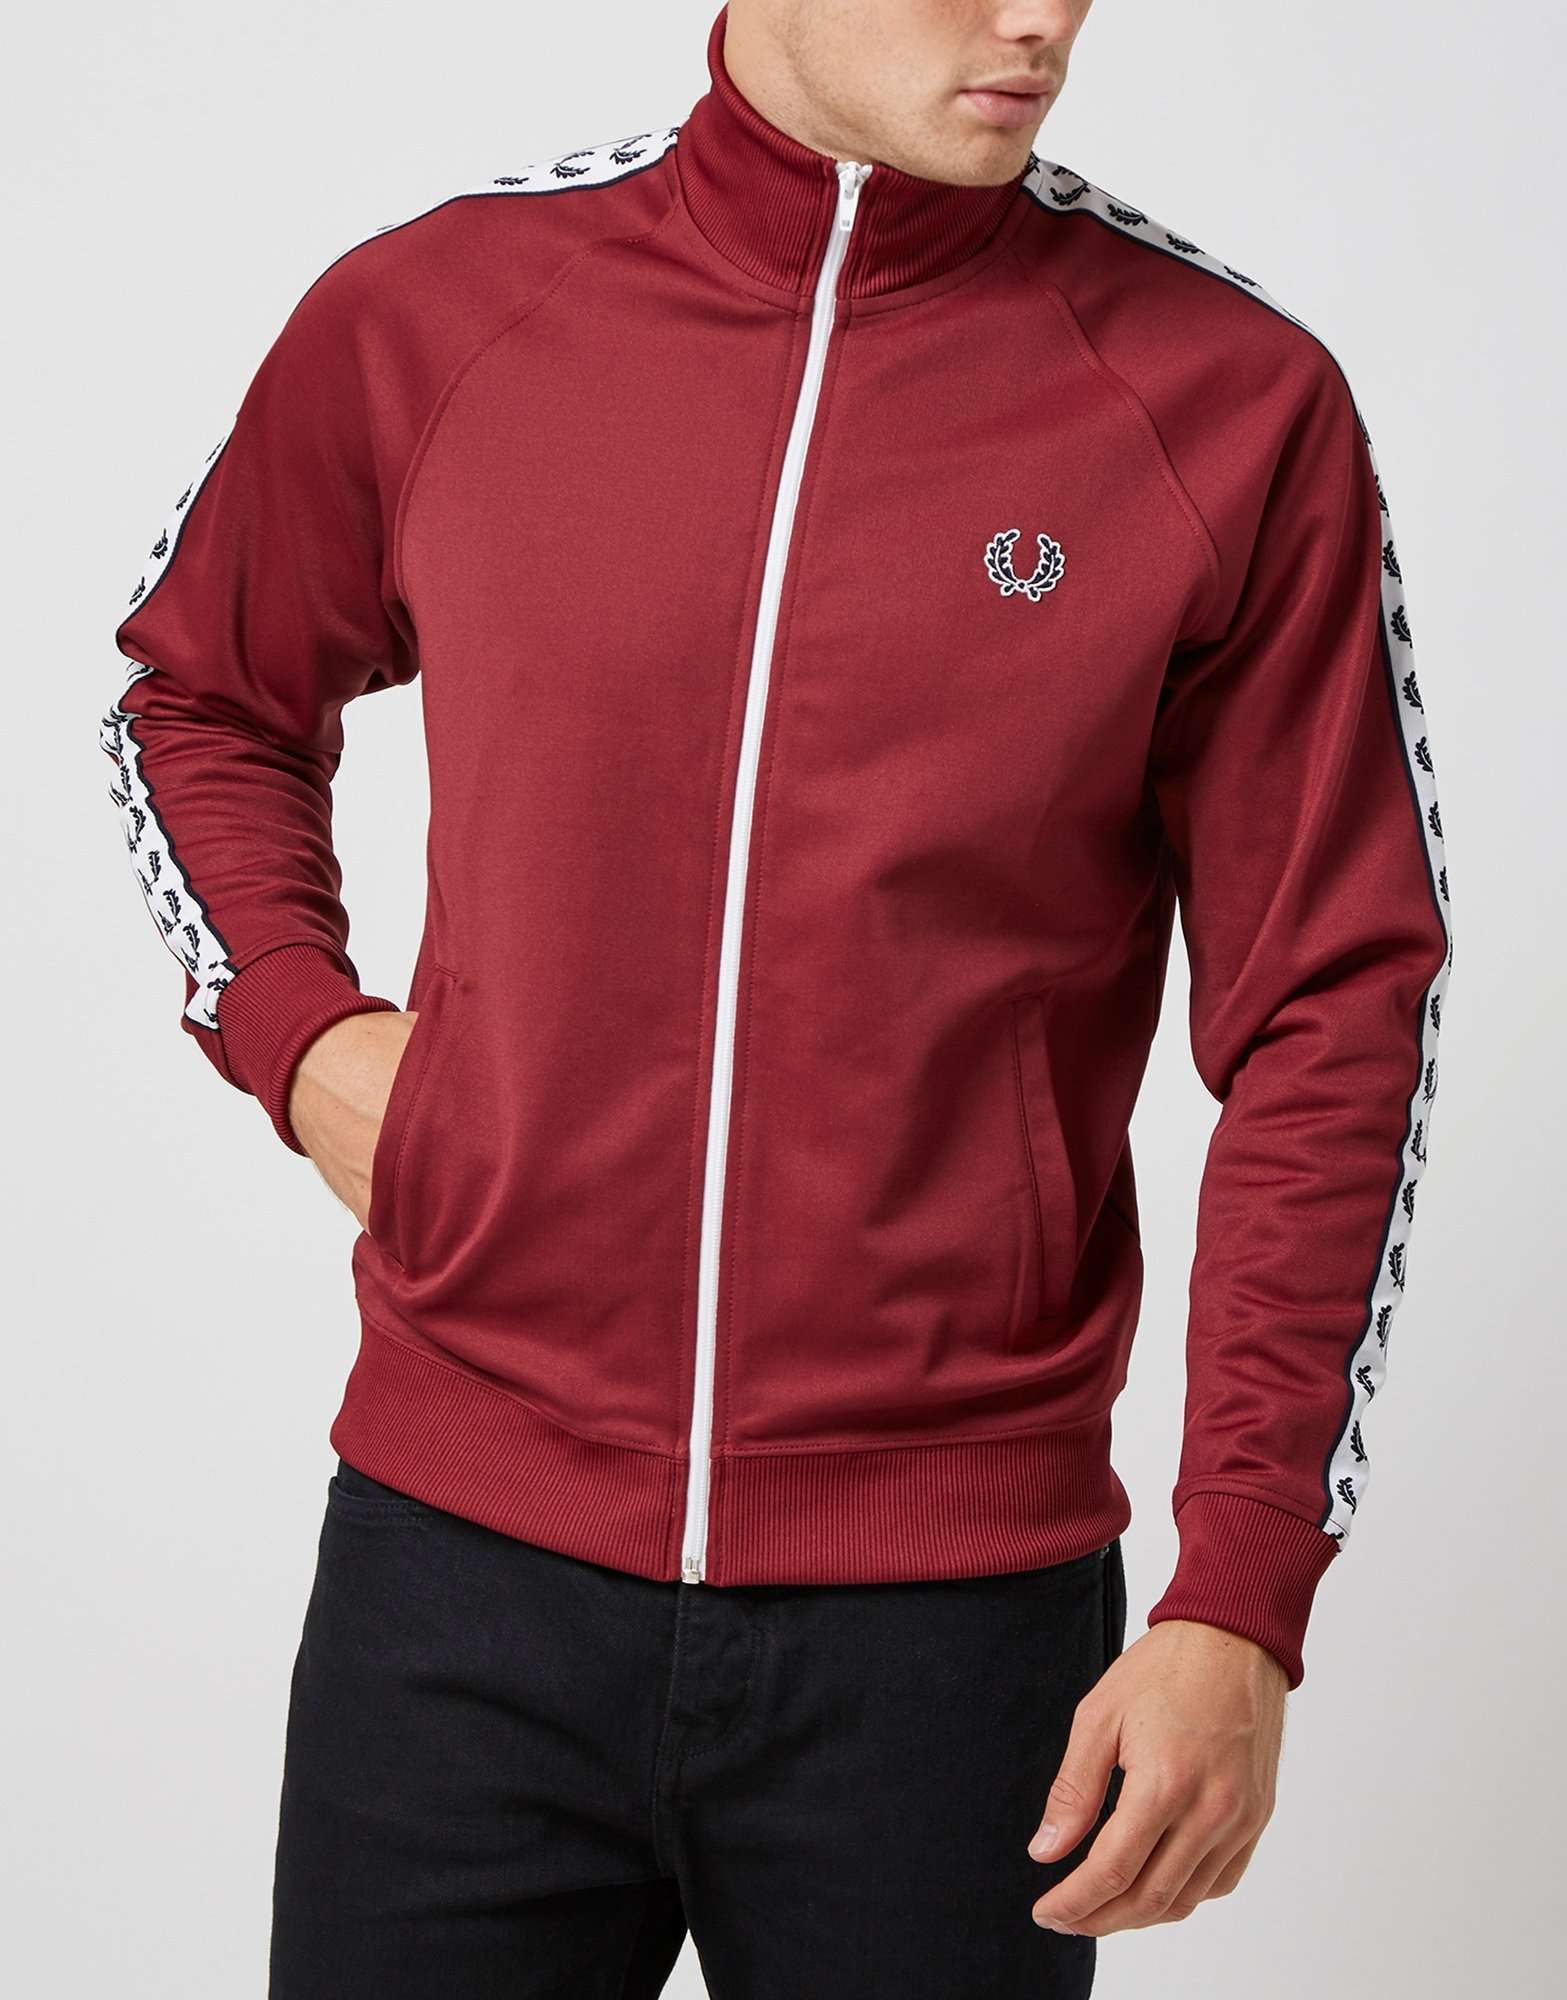 636838fe34a Fred Perry Laurel Wreath Tape Track Top | scotts Menswear